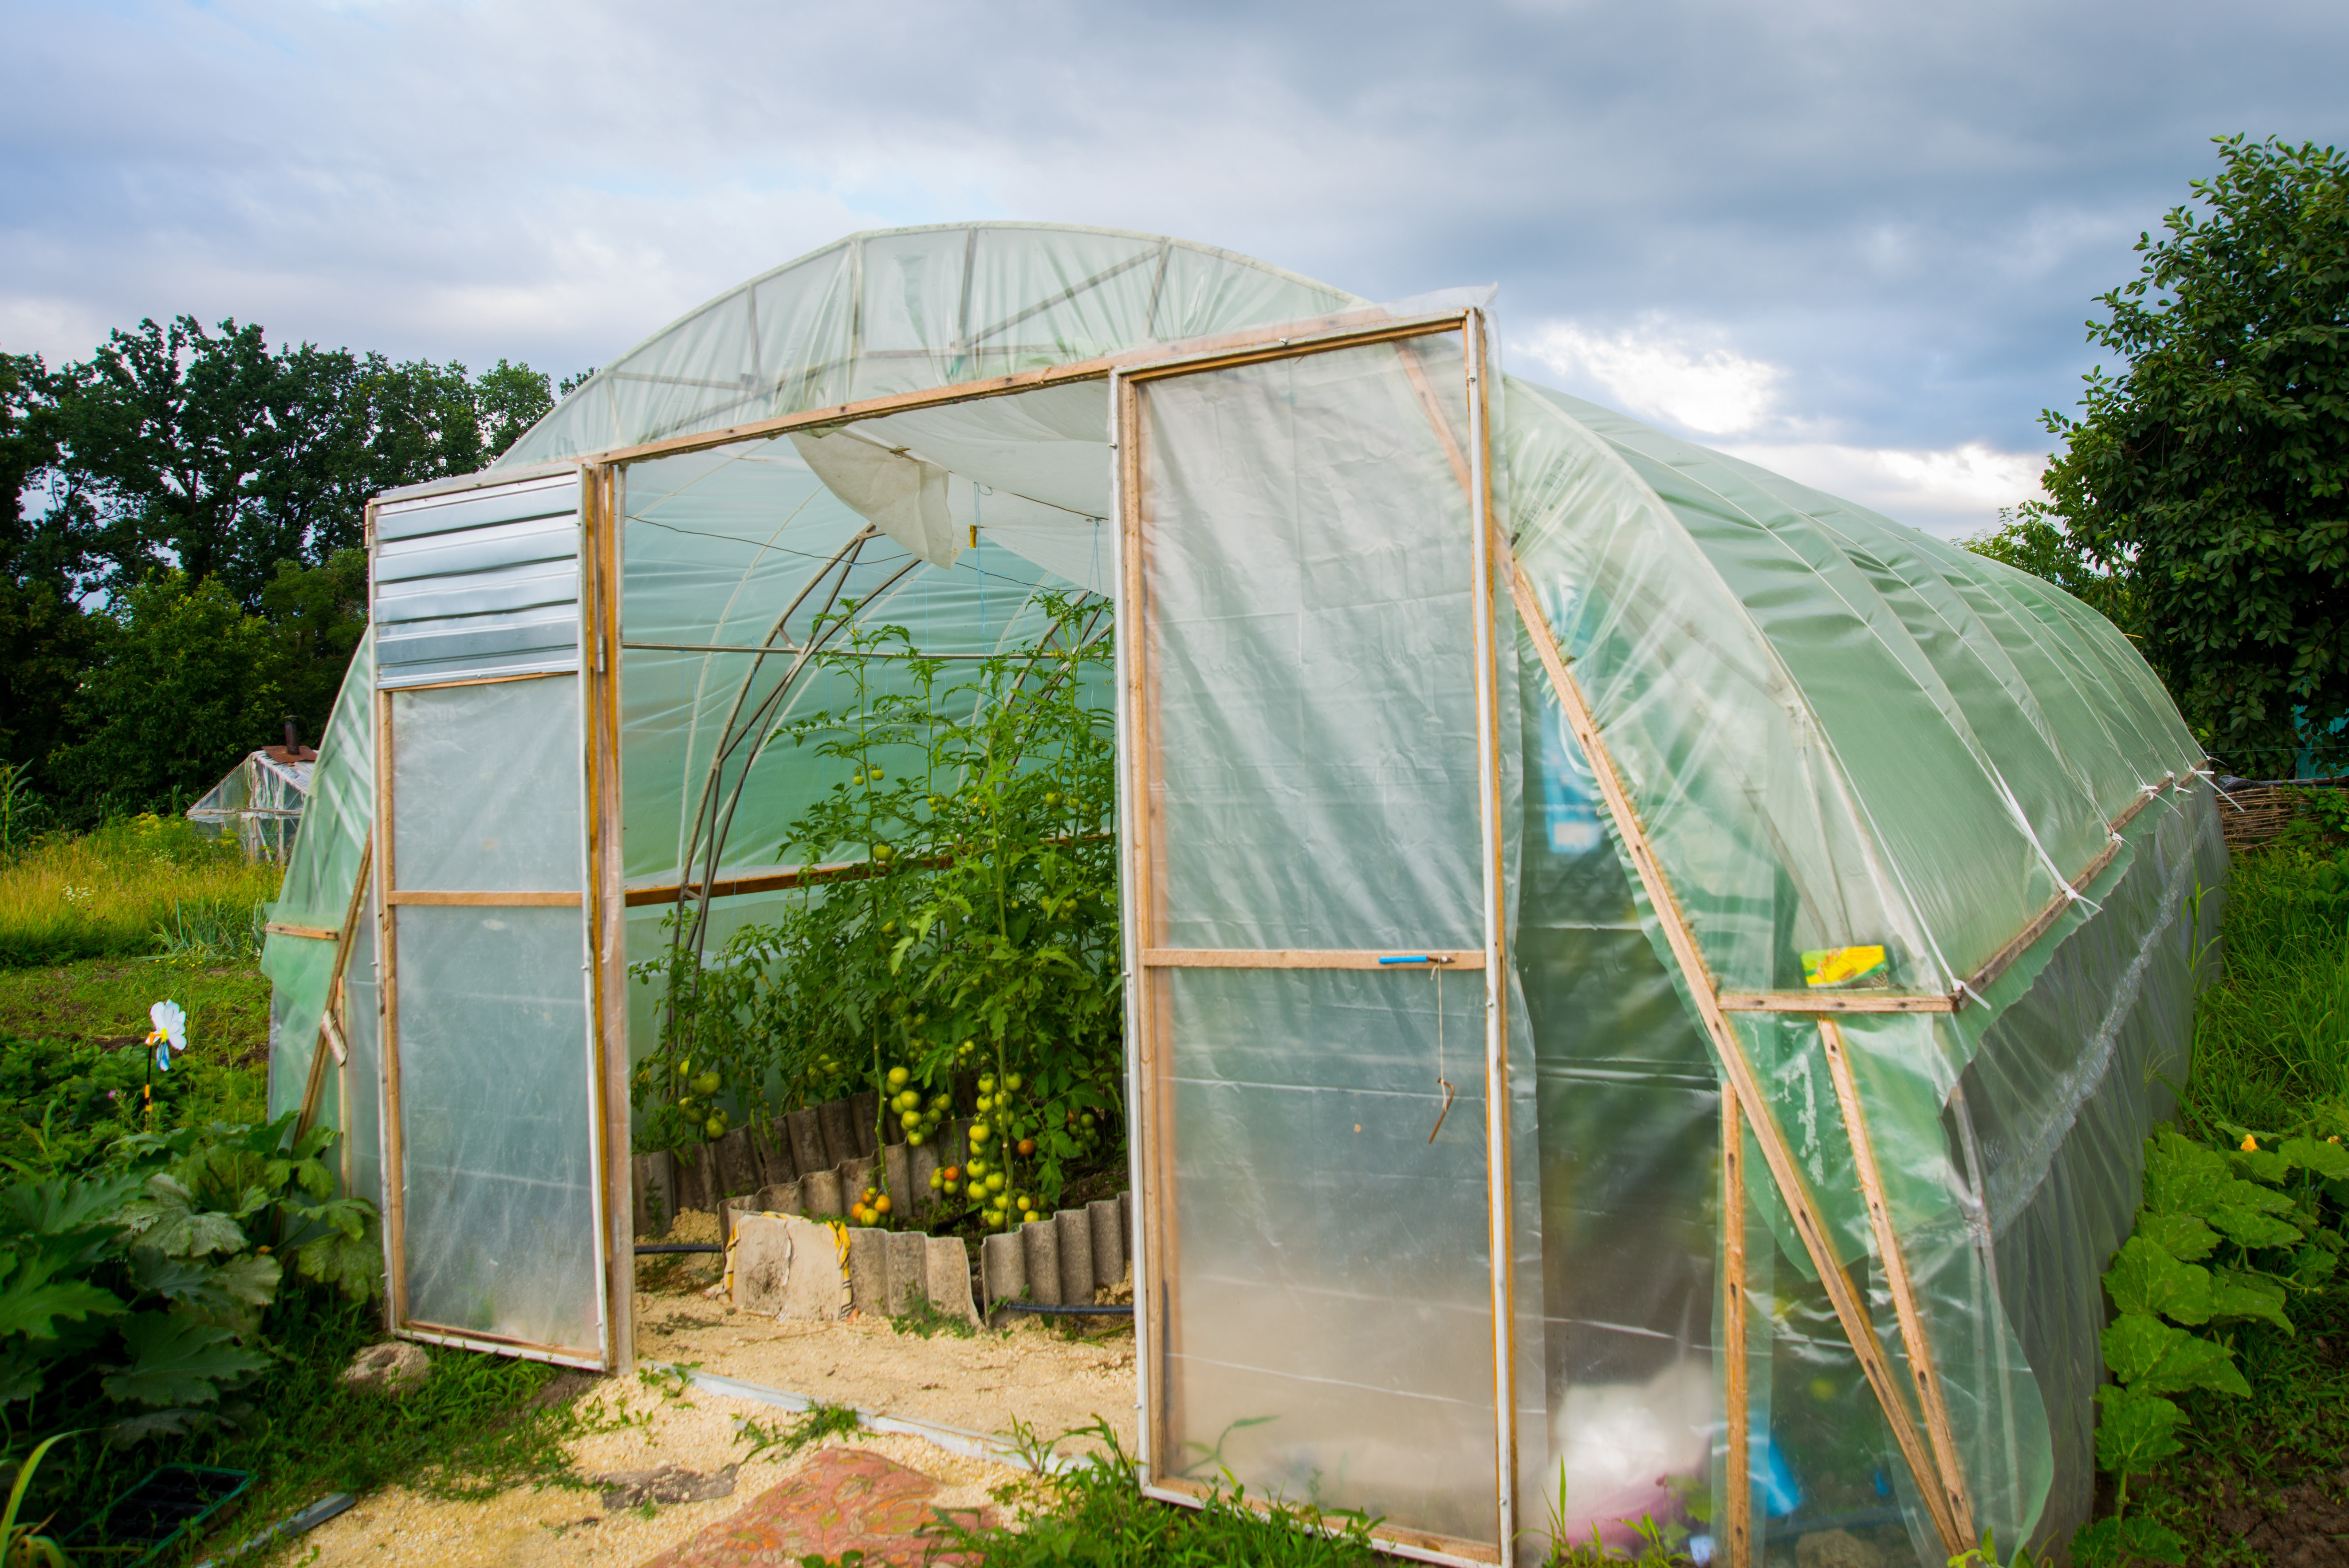 Big greenhouse in the garden summer